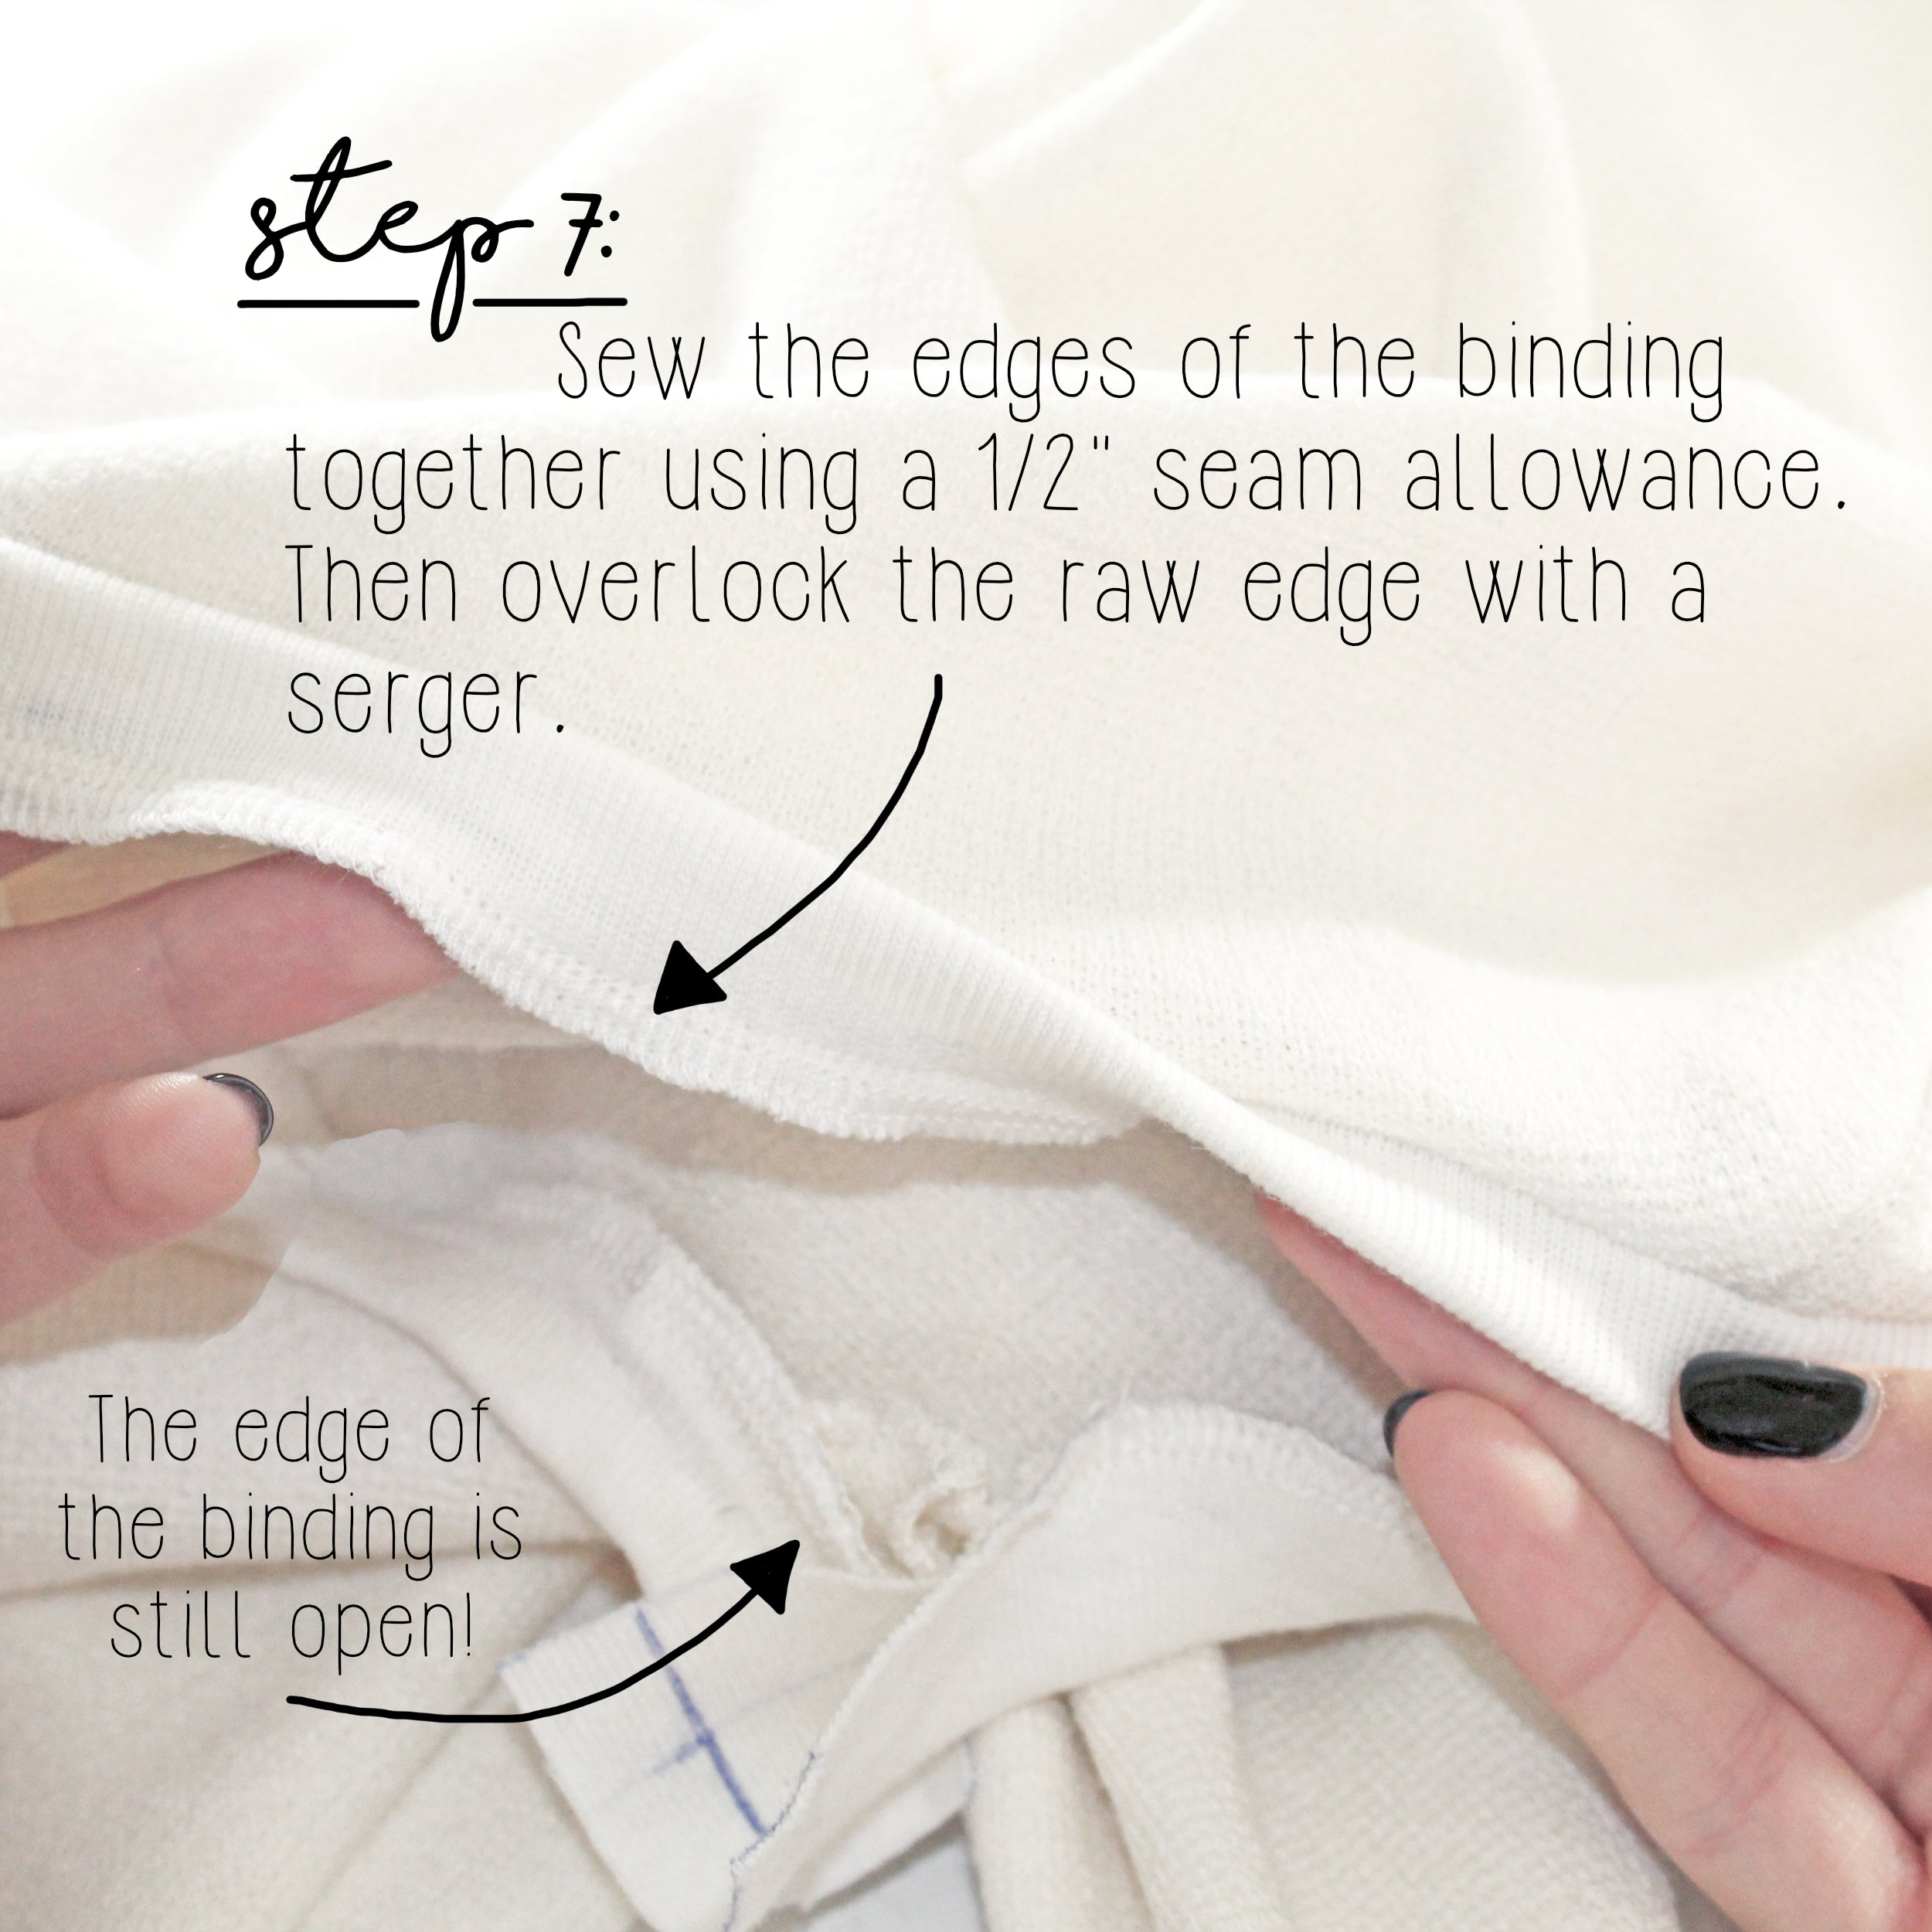 How To Sew A Knit Seam Binding Sewing Tutorial: Step 7